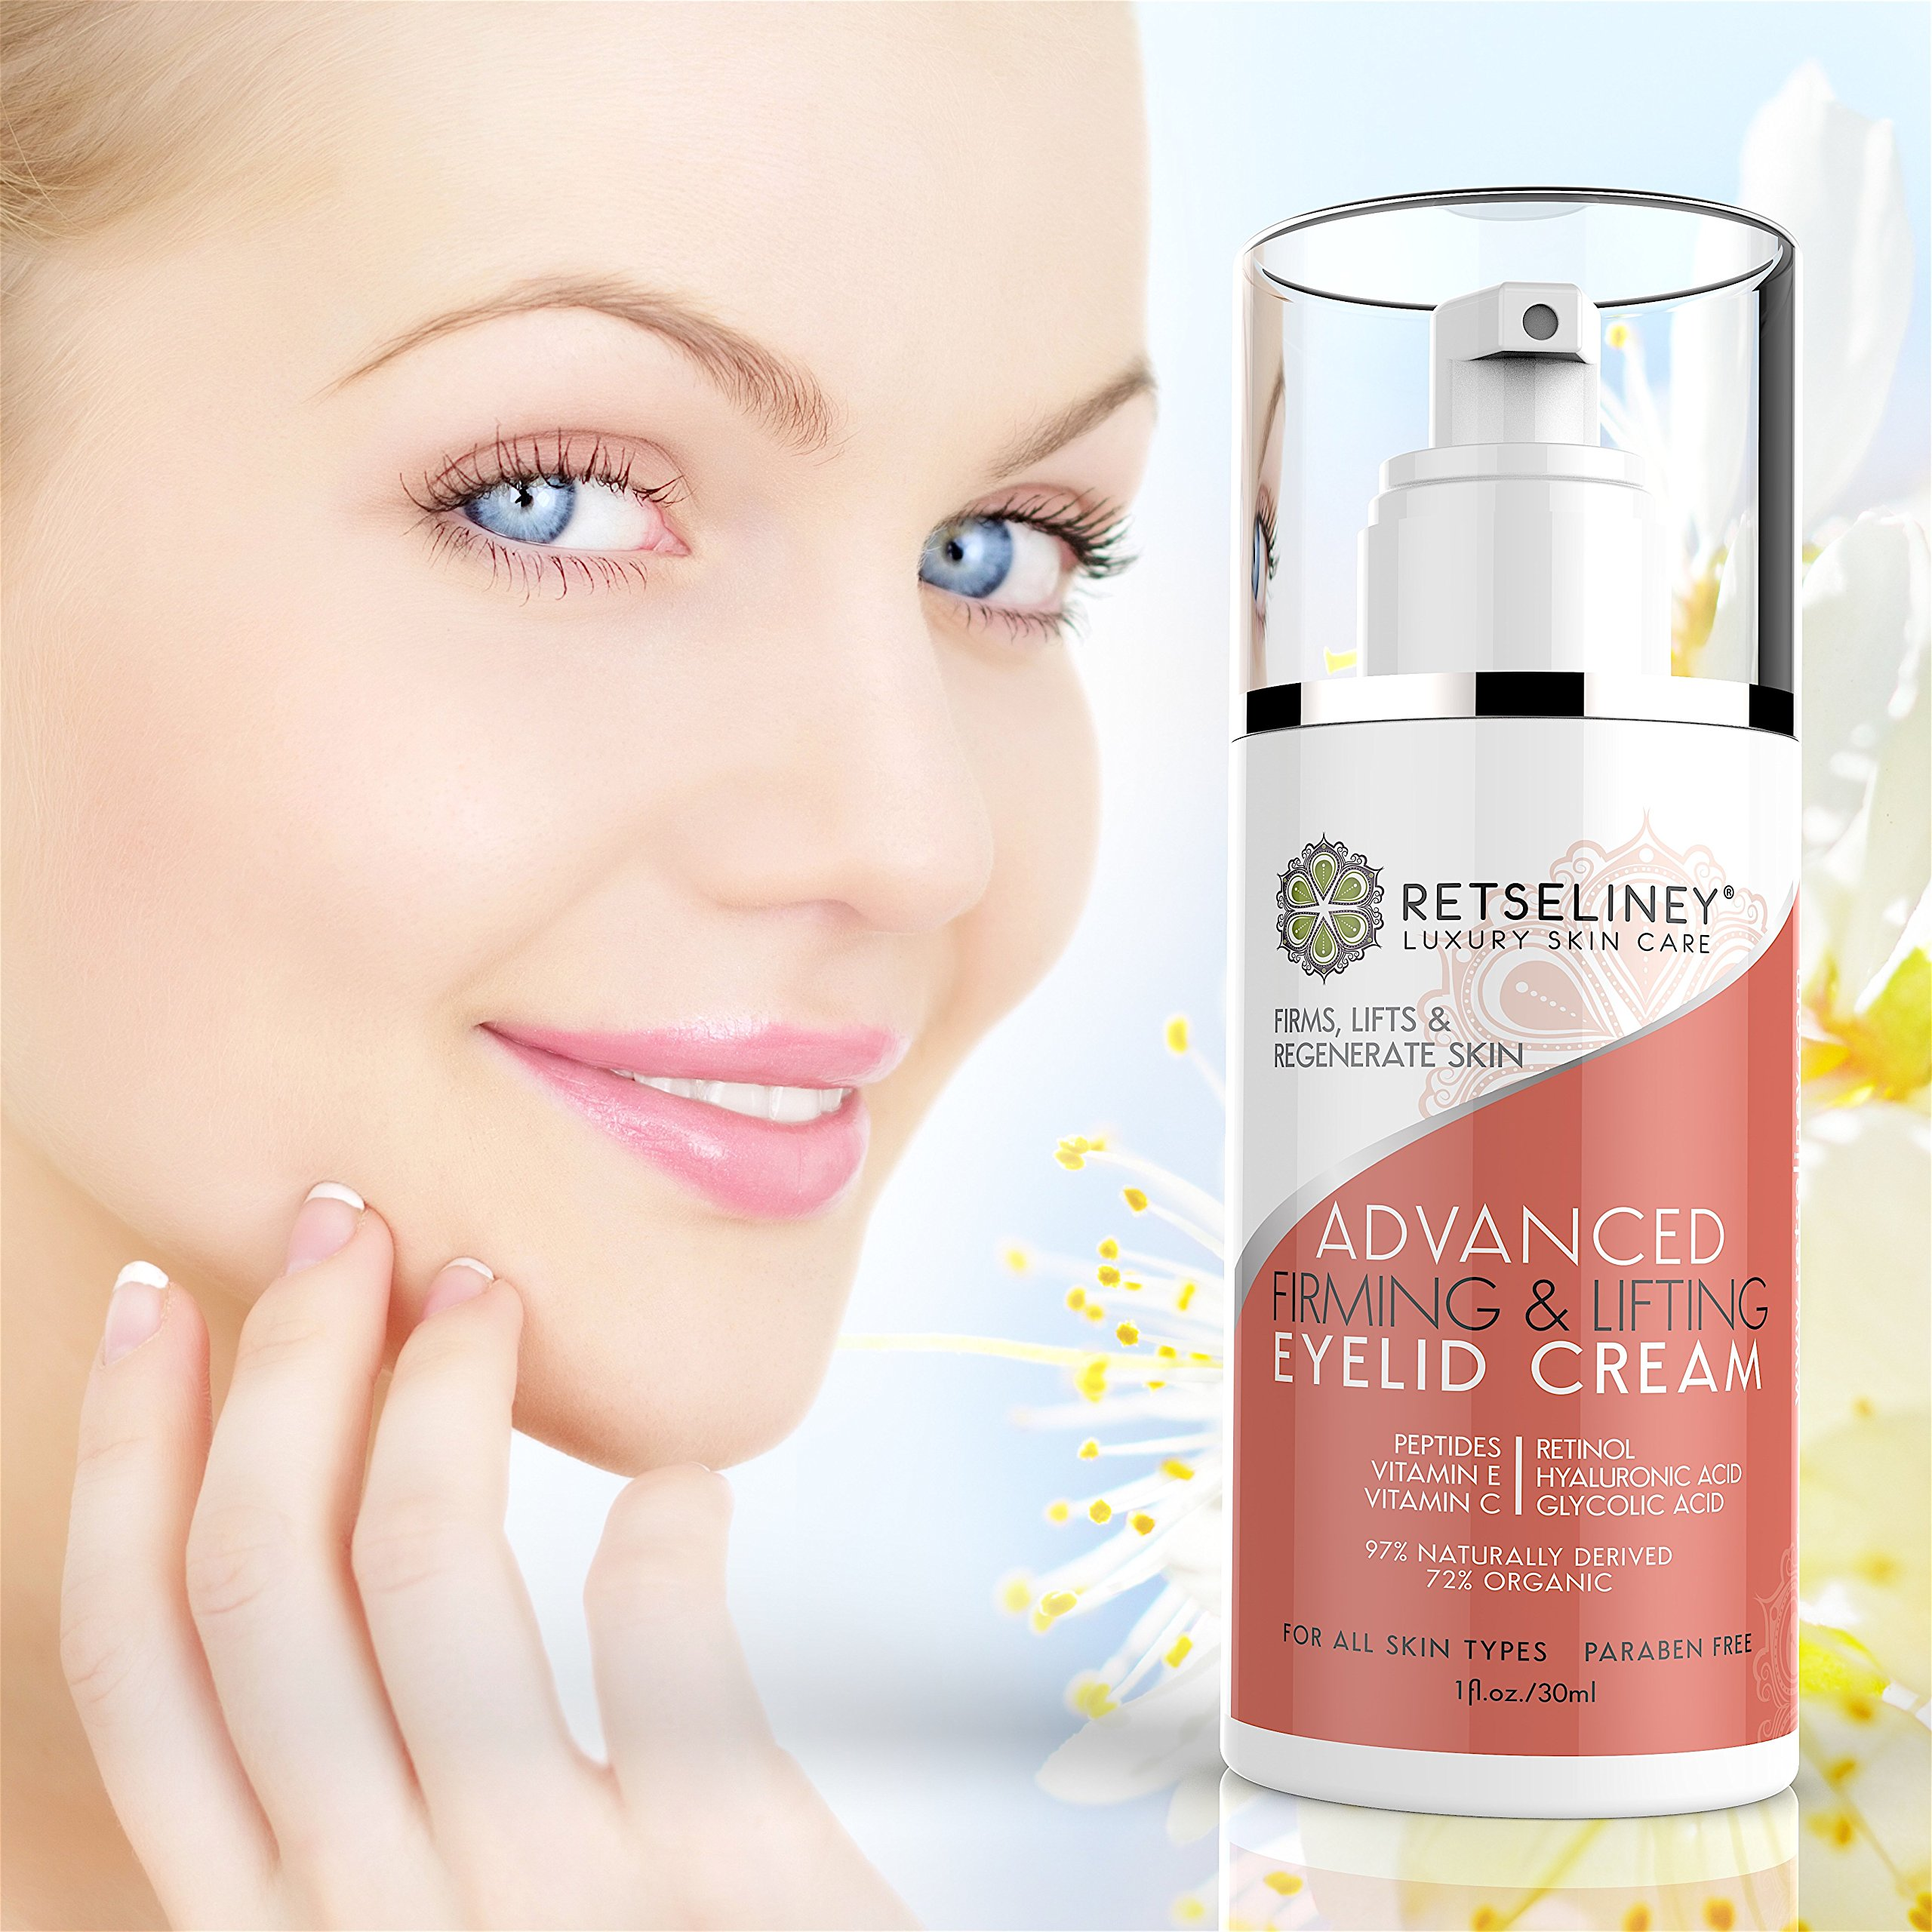 Retseliney Firming & Lifting Eyelid Cream, Firm and Tone Sagging and Drooping Skin on the Upper Eyelids, Anti-Wrinkle Moisturizer with Retinol, Peptides & Vitamin C, Anti-Aging Eye Cream for Daily Use by Retseliney (Image #8)